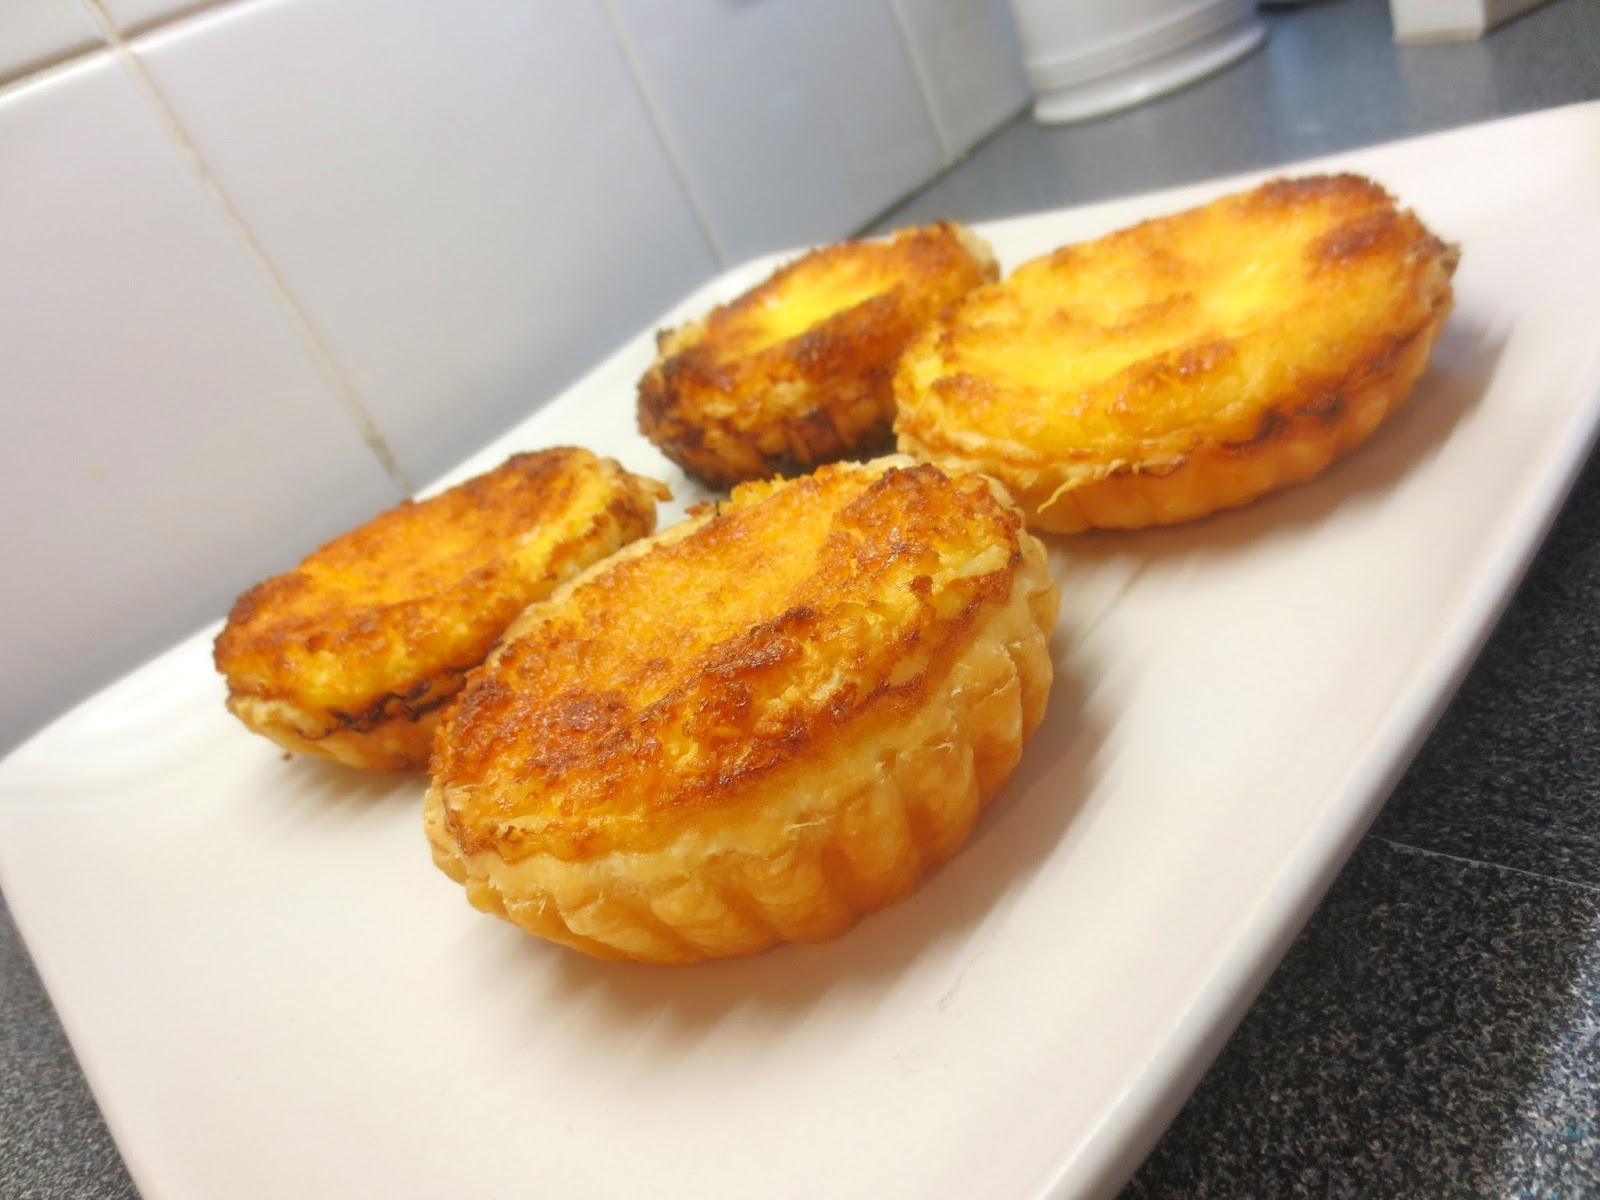 Quark Cake Recipes Uk: The Hussy London Housewife: Lemon And Coconut Tarts With